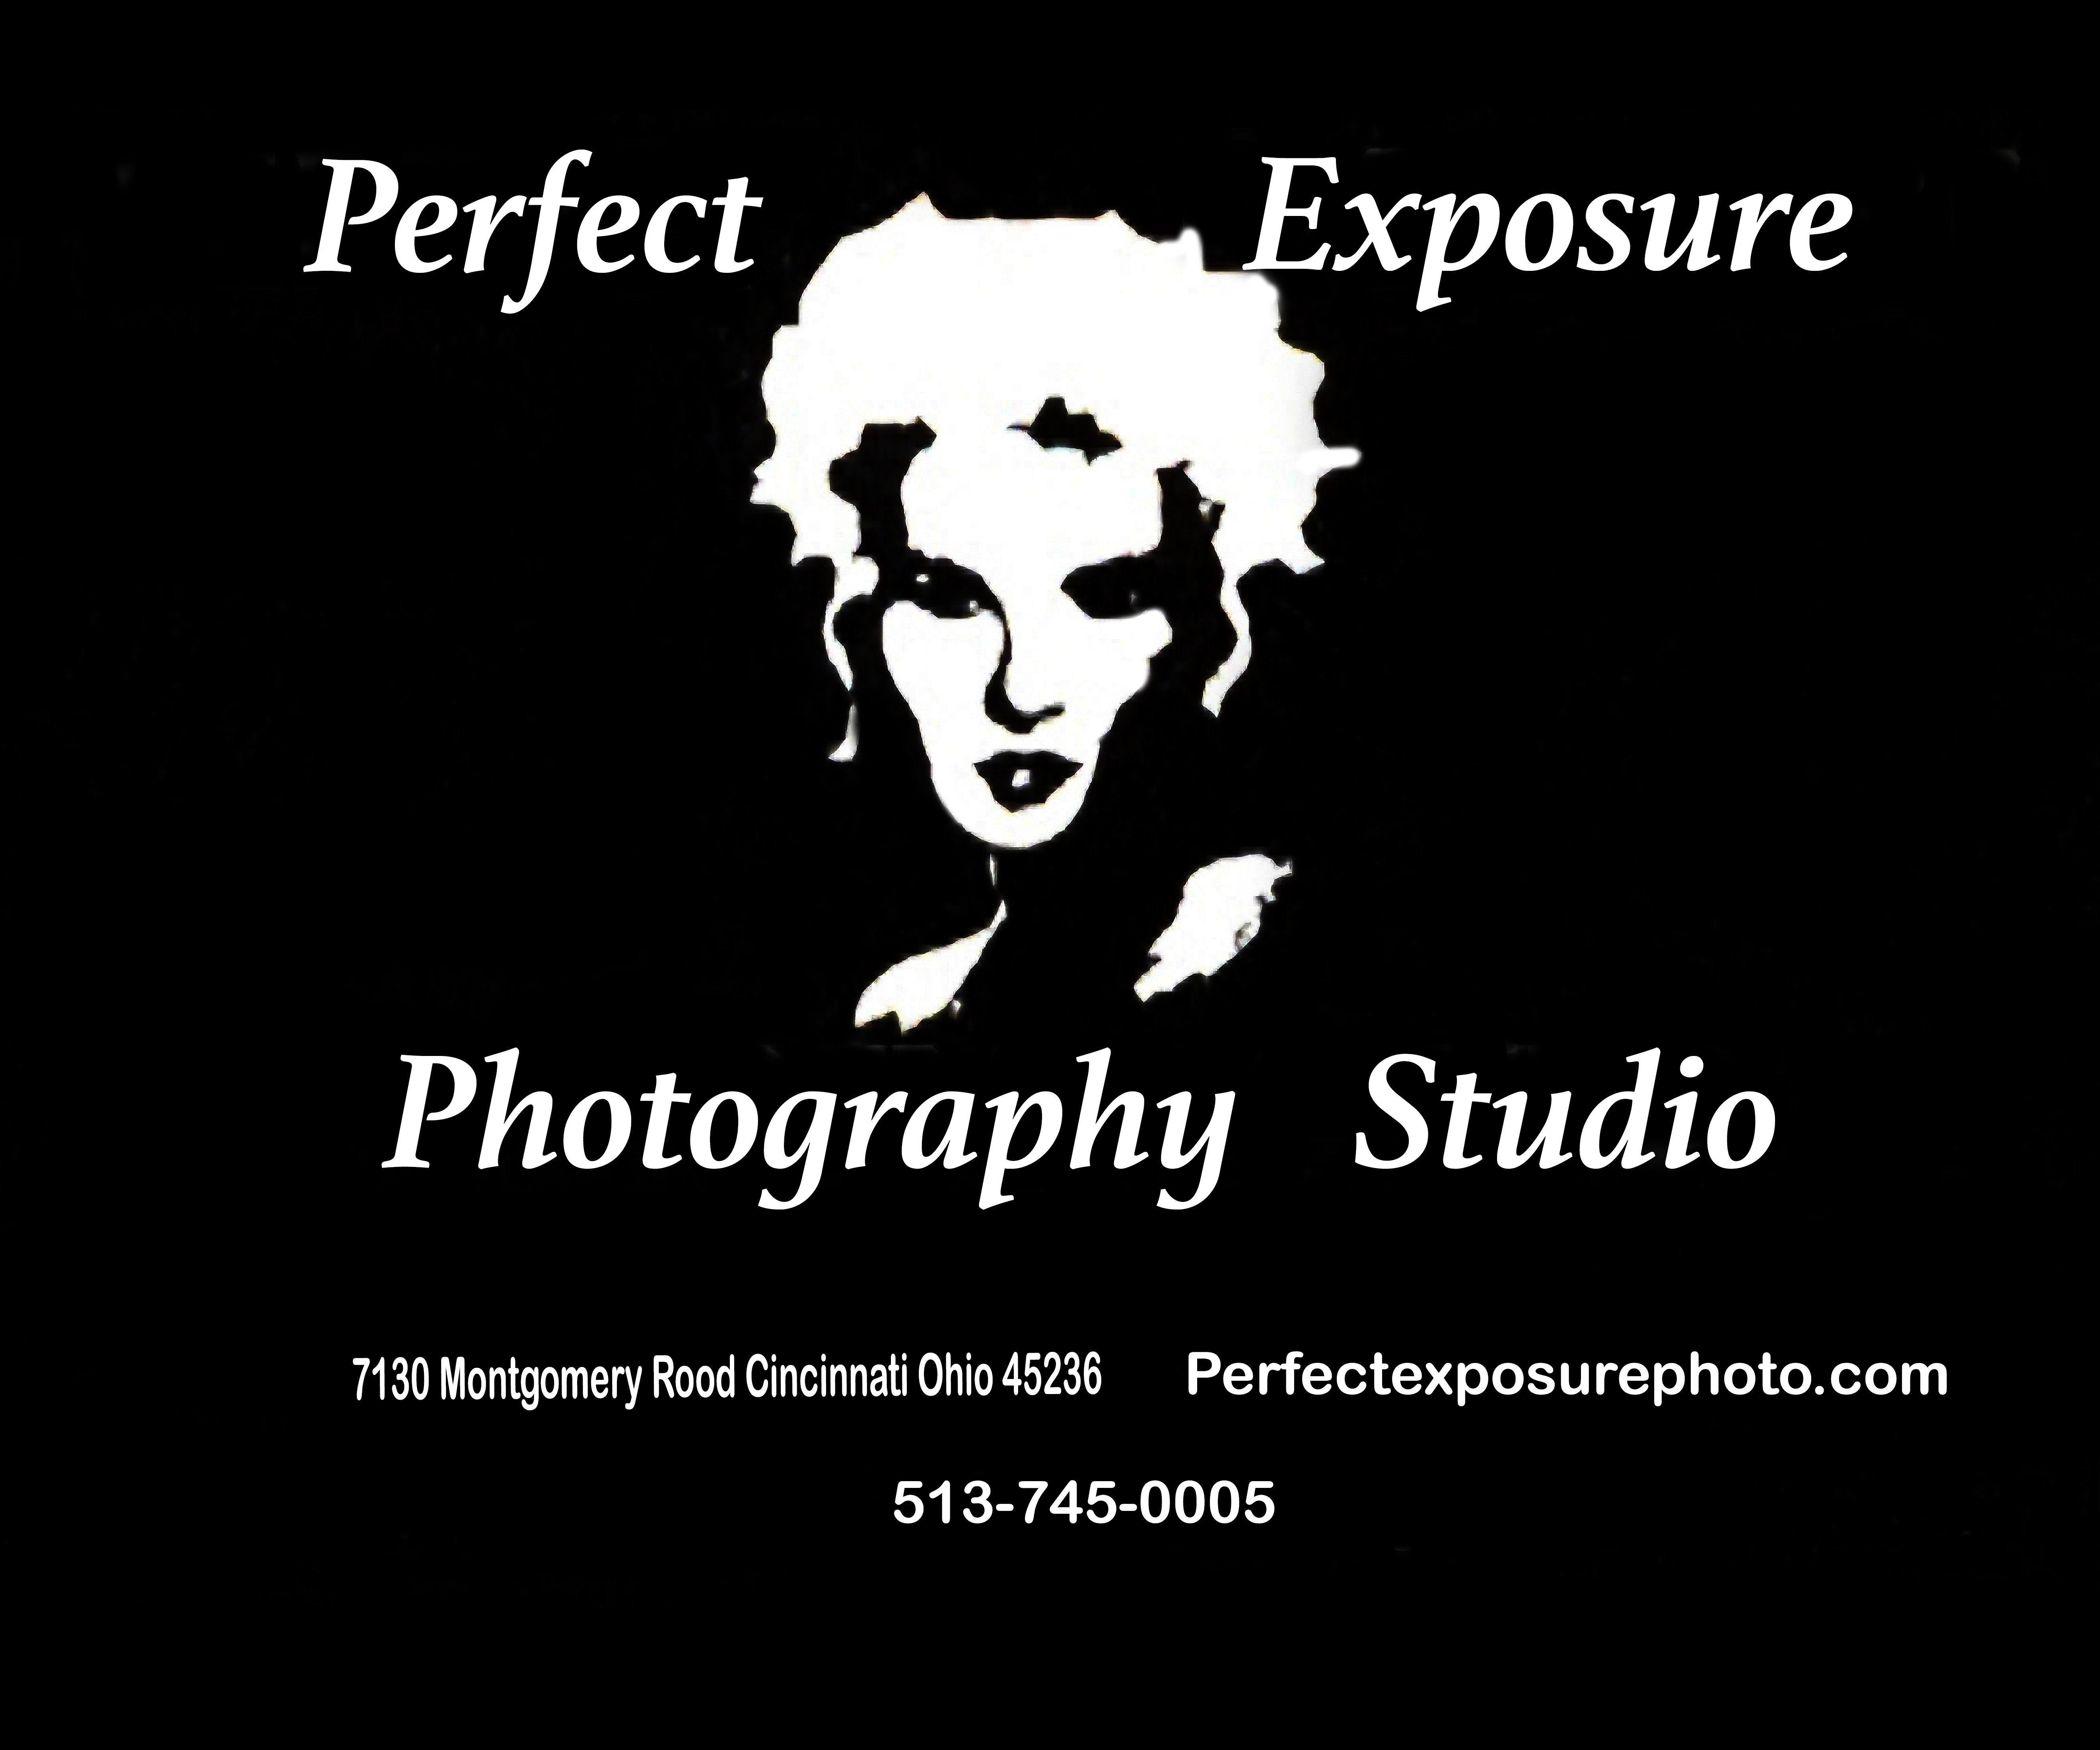 Perfect Exposure Studio